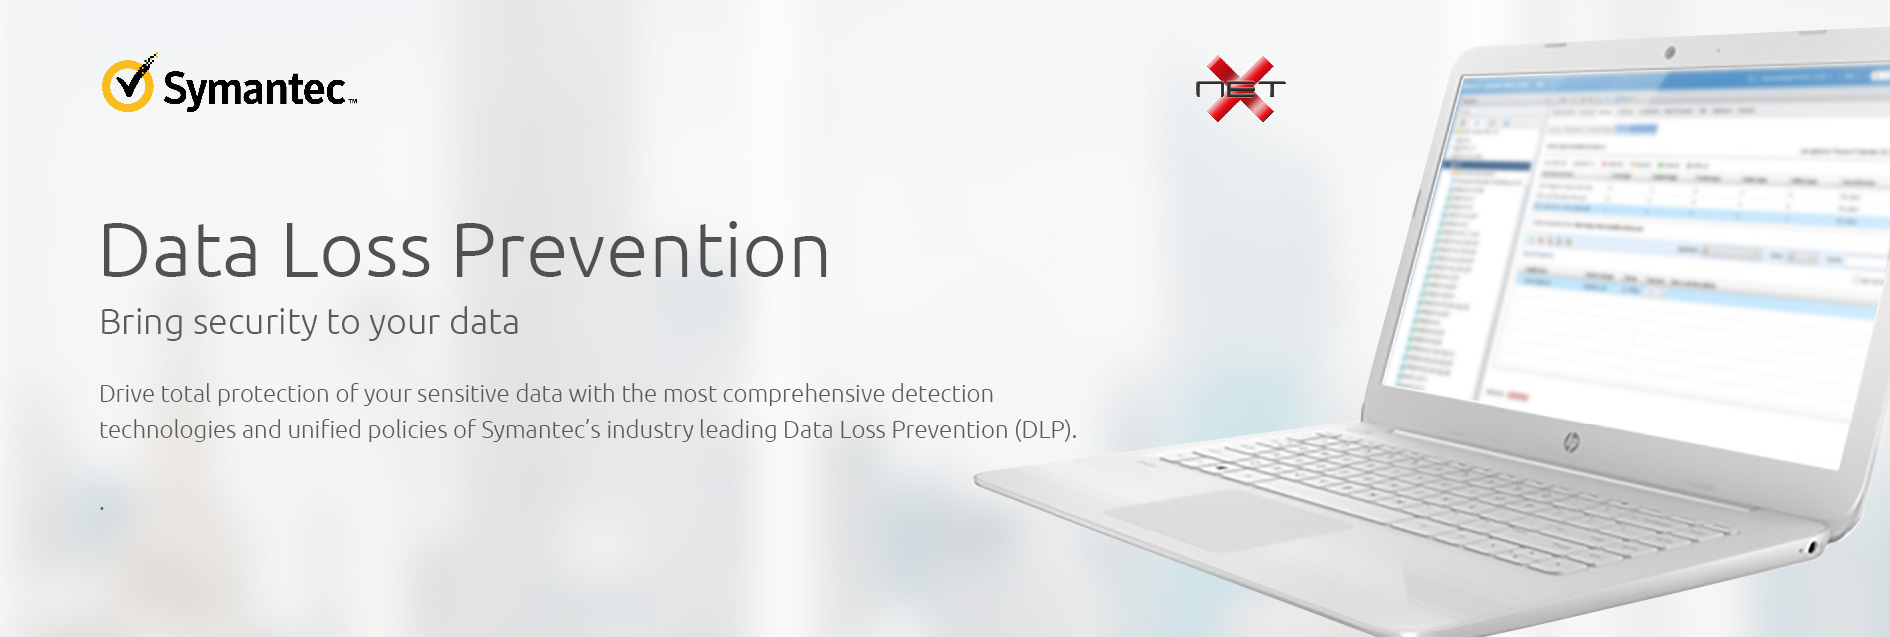 netx-symantec-Data-Loss-Prevention-banner